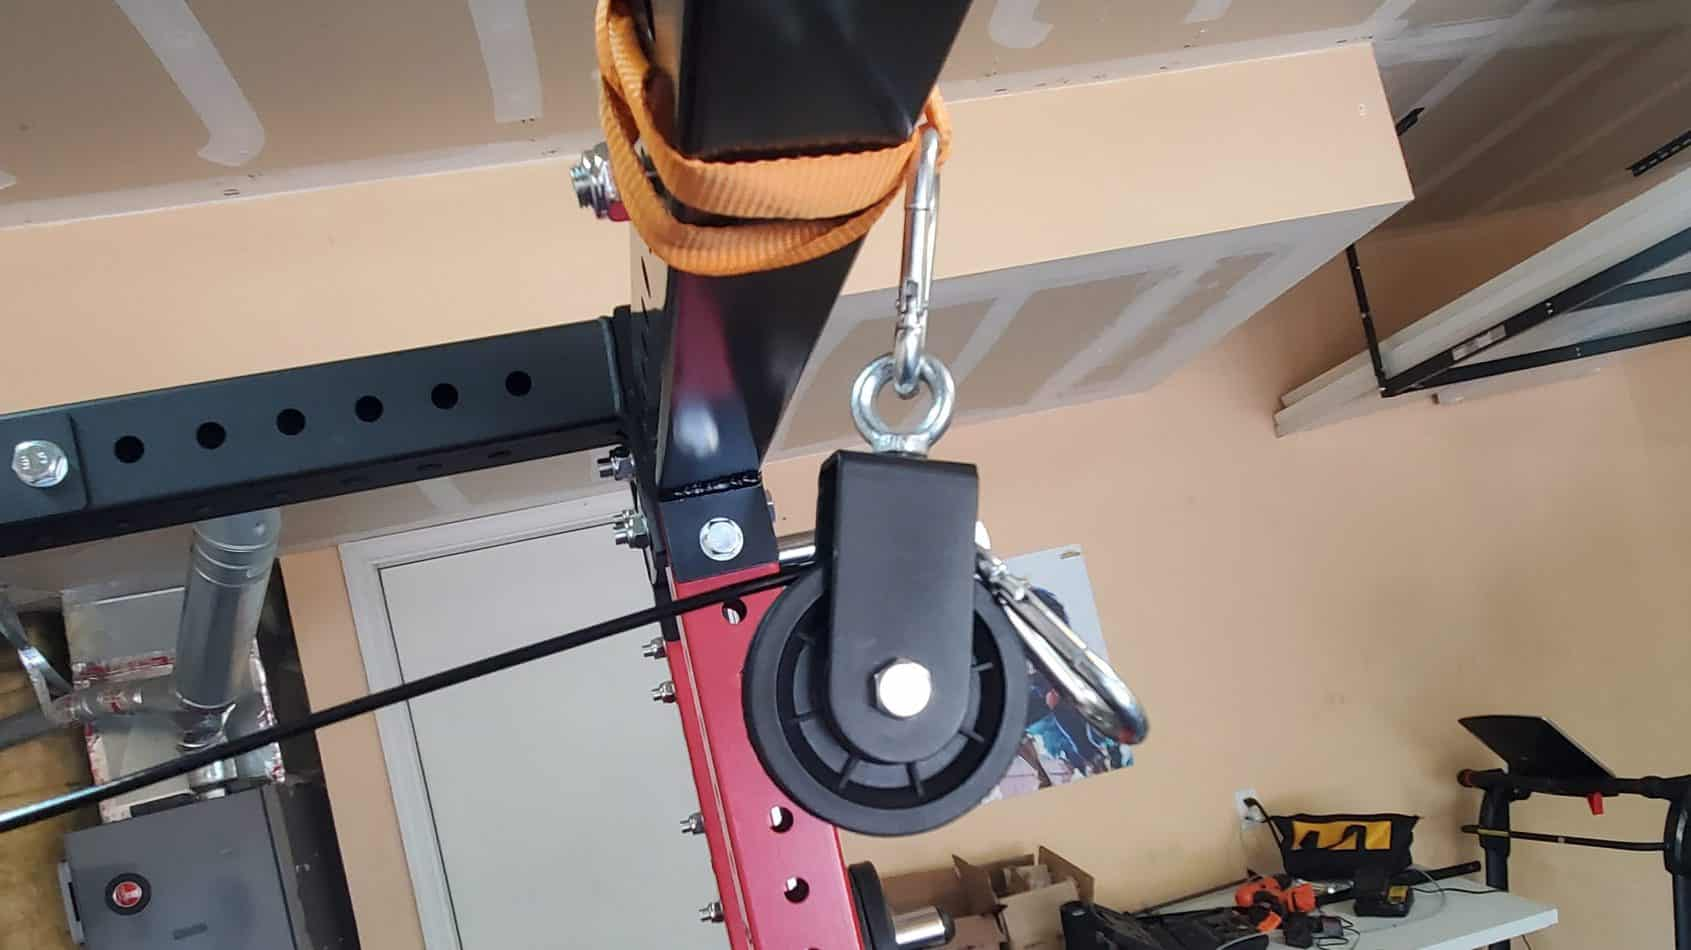 How To Make Your Own DIY Home Gym Pulley System first carabiner and pulley setup